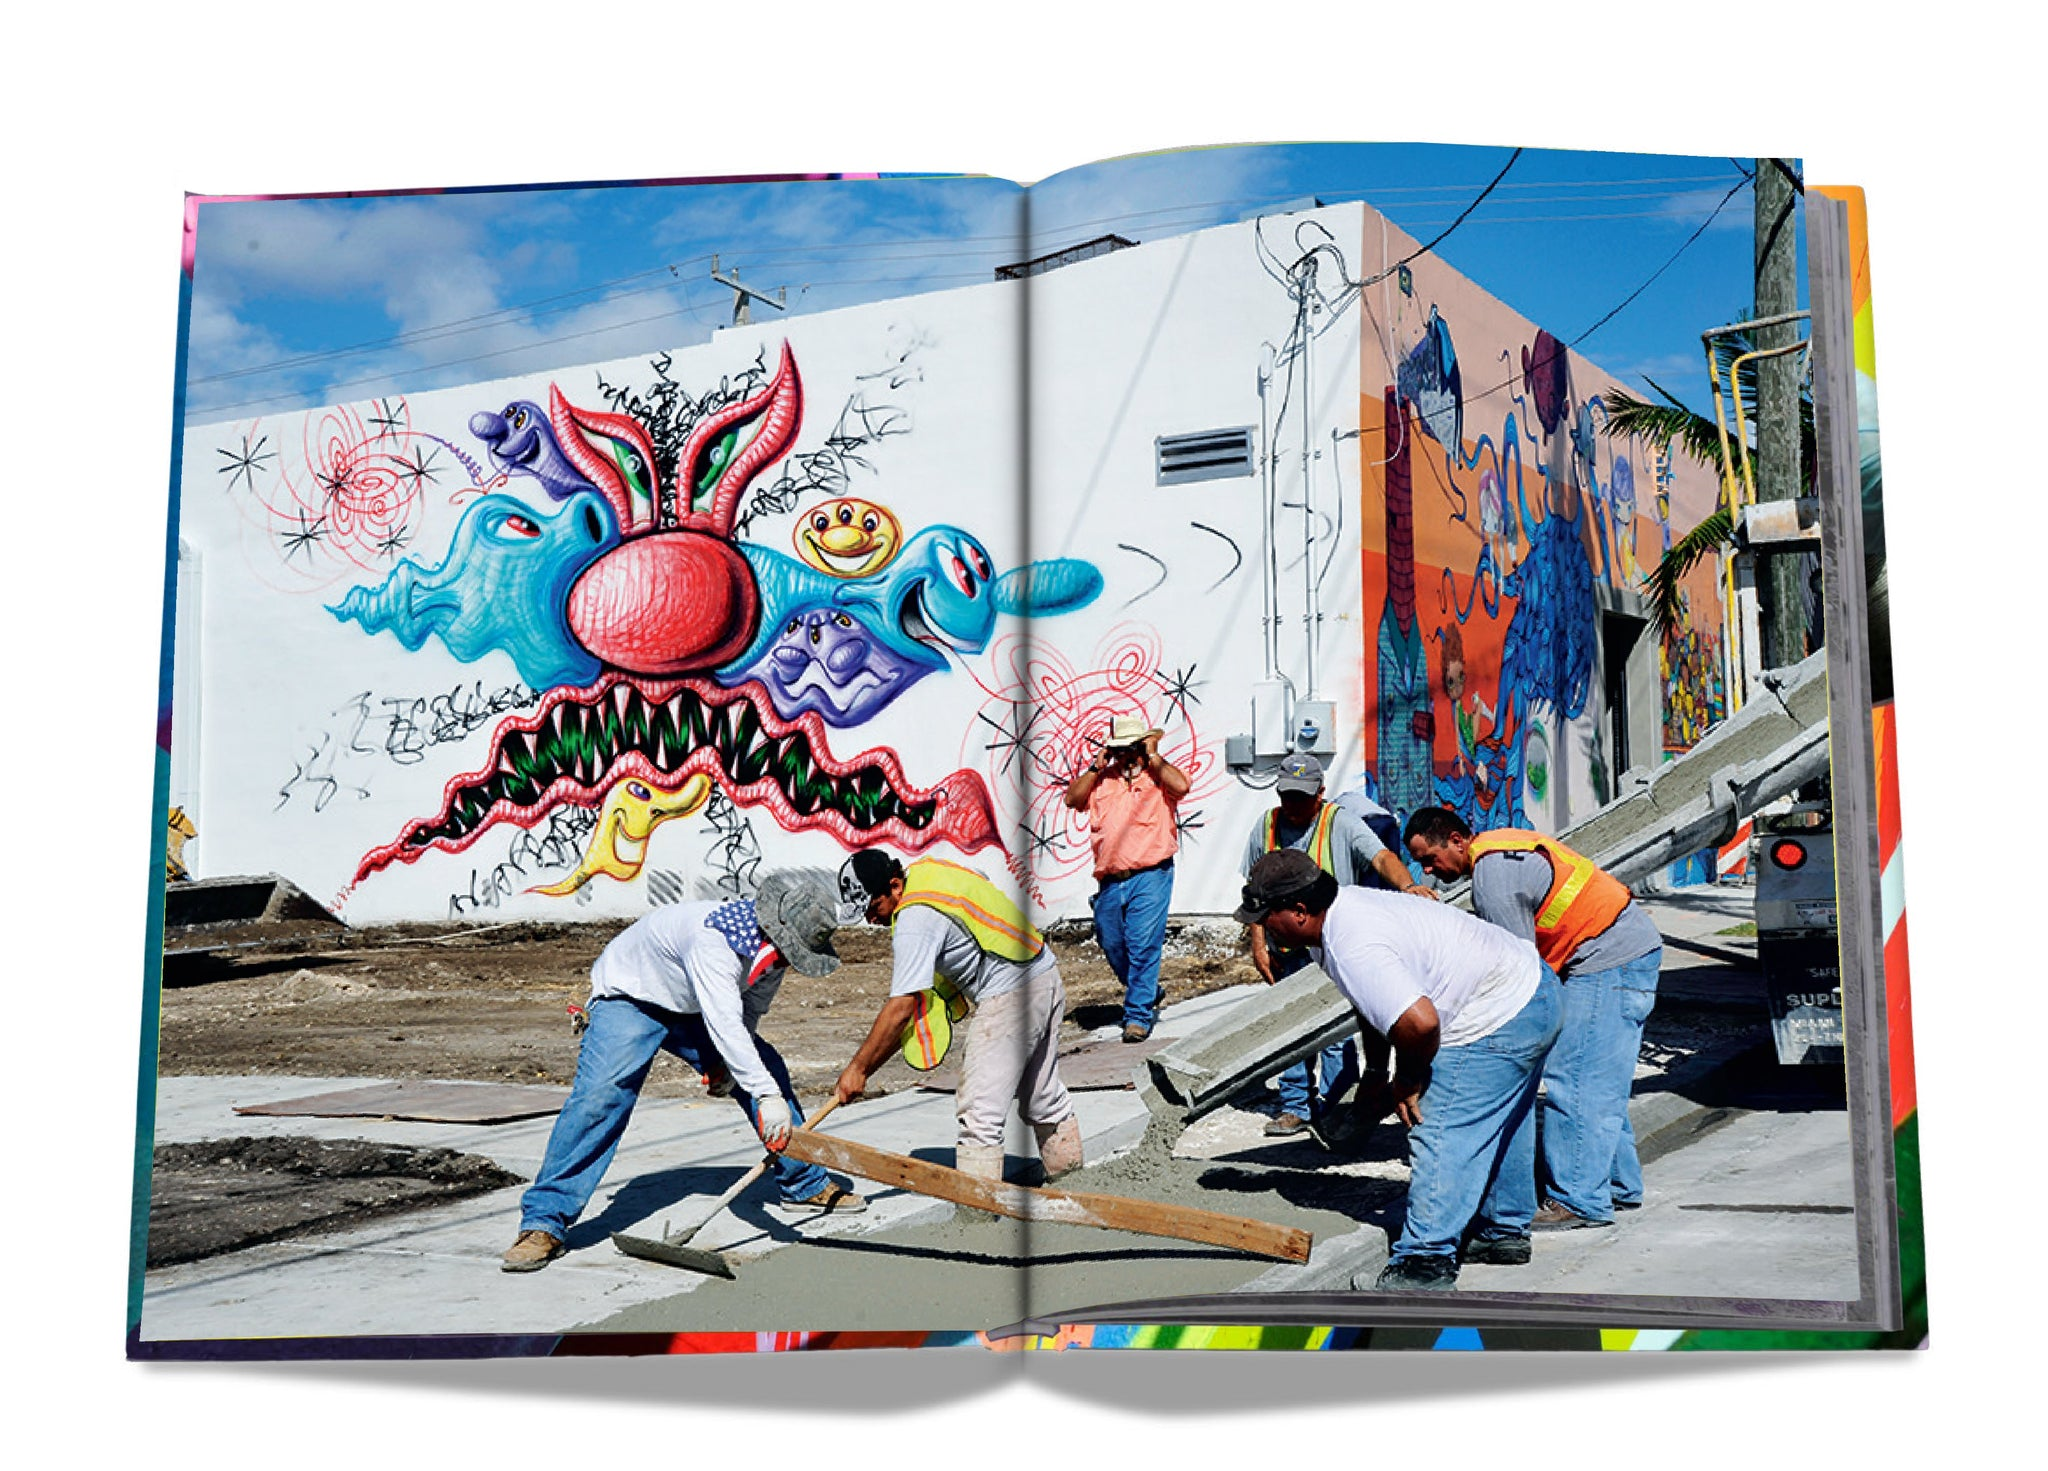 ASSOULINE Books Walls of Change: The Story of the Wynwood Walls